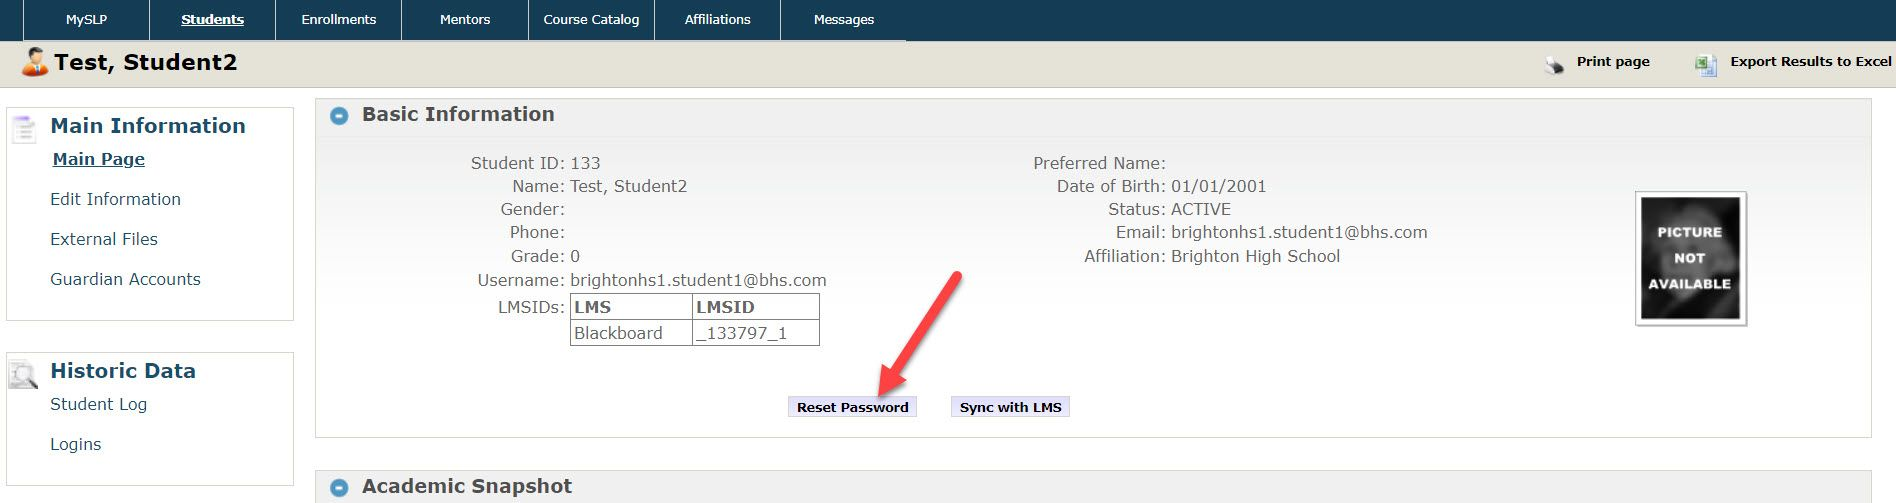 The Main Page displays the student information page which shows the student ID, Name, Gender, Grade, Username, LMS IDs, Preferred Name, Date of Birth, Email, and Affiliation. An arrow points to the Reset Password button at the bottom of the Basic Information section. There is also a Sync with LMS button to the right of the Reset Password button.